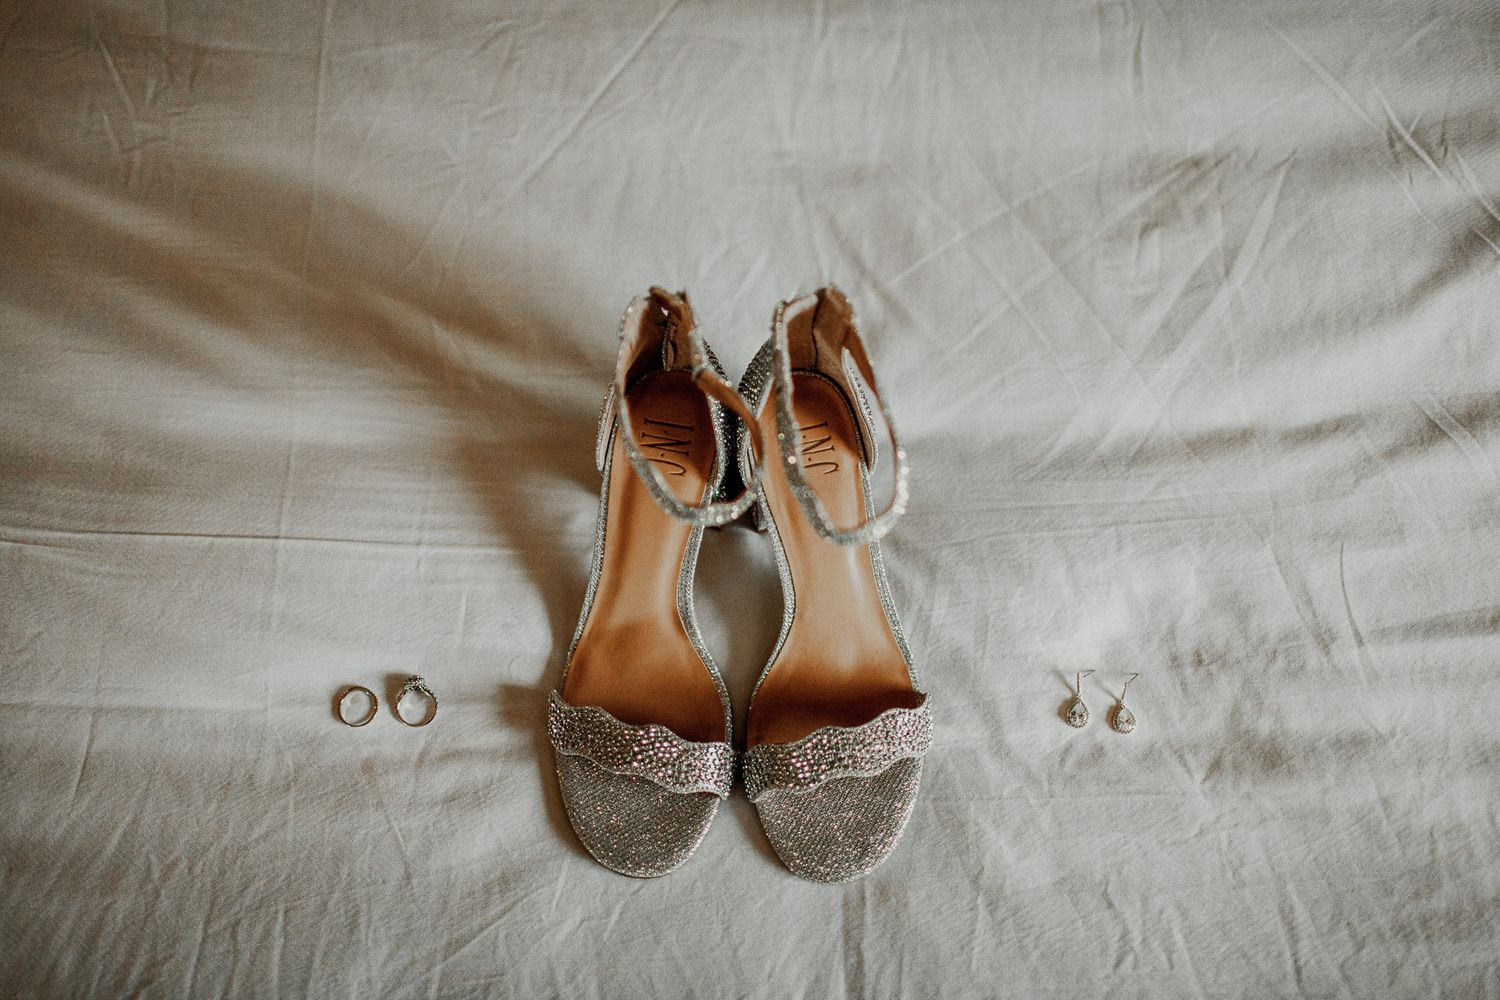 bride shoes, earrings, and rings on top of bed